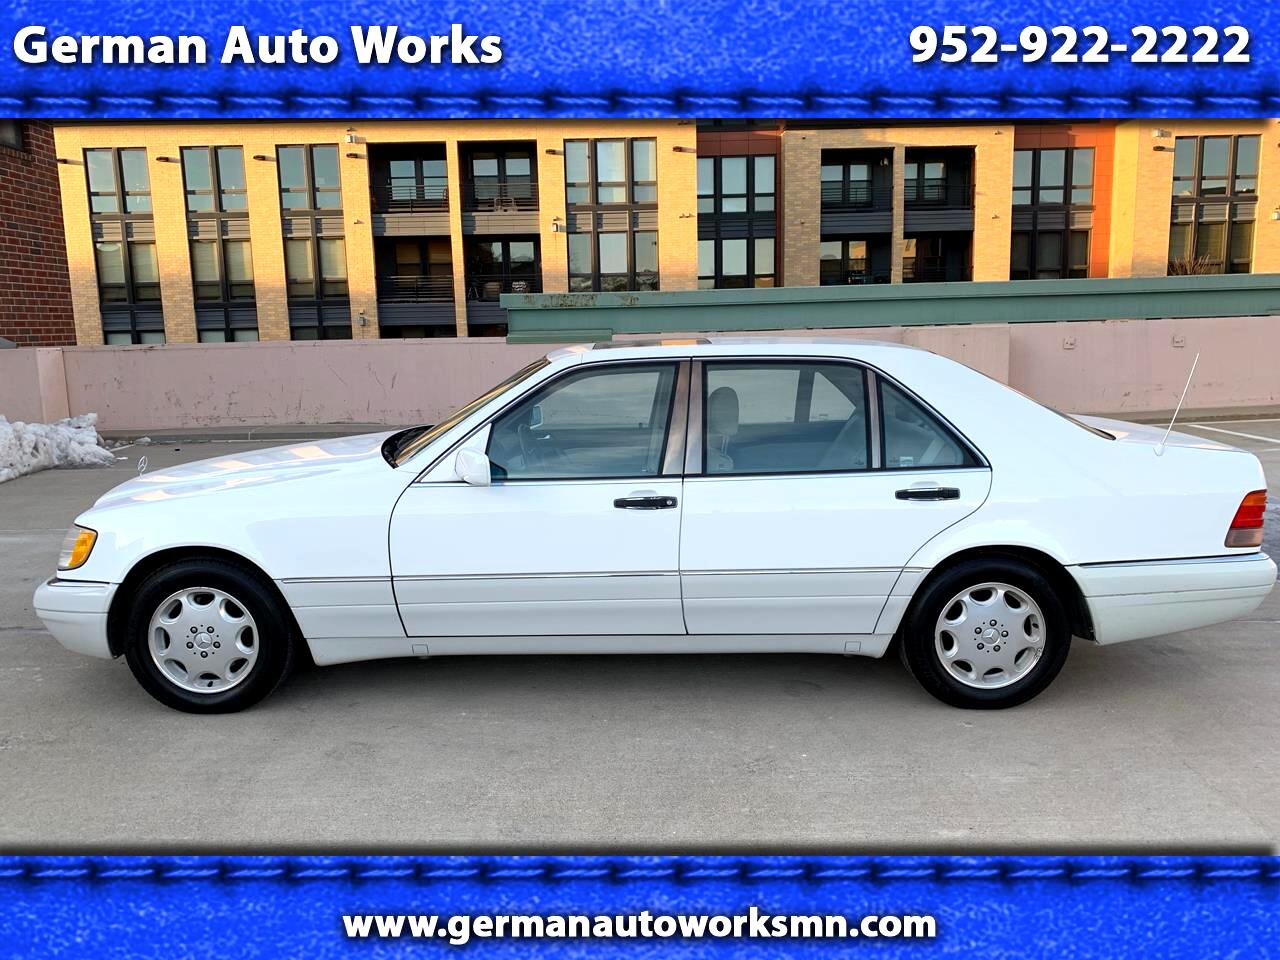 1996 Mercedes-Benz S Class 4dr Sedan 3.2L Lwb